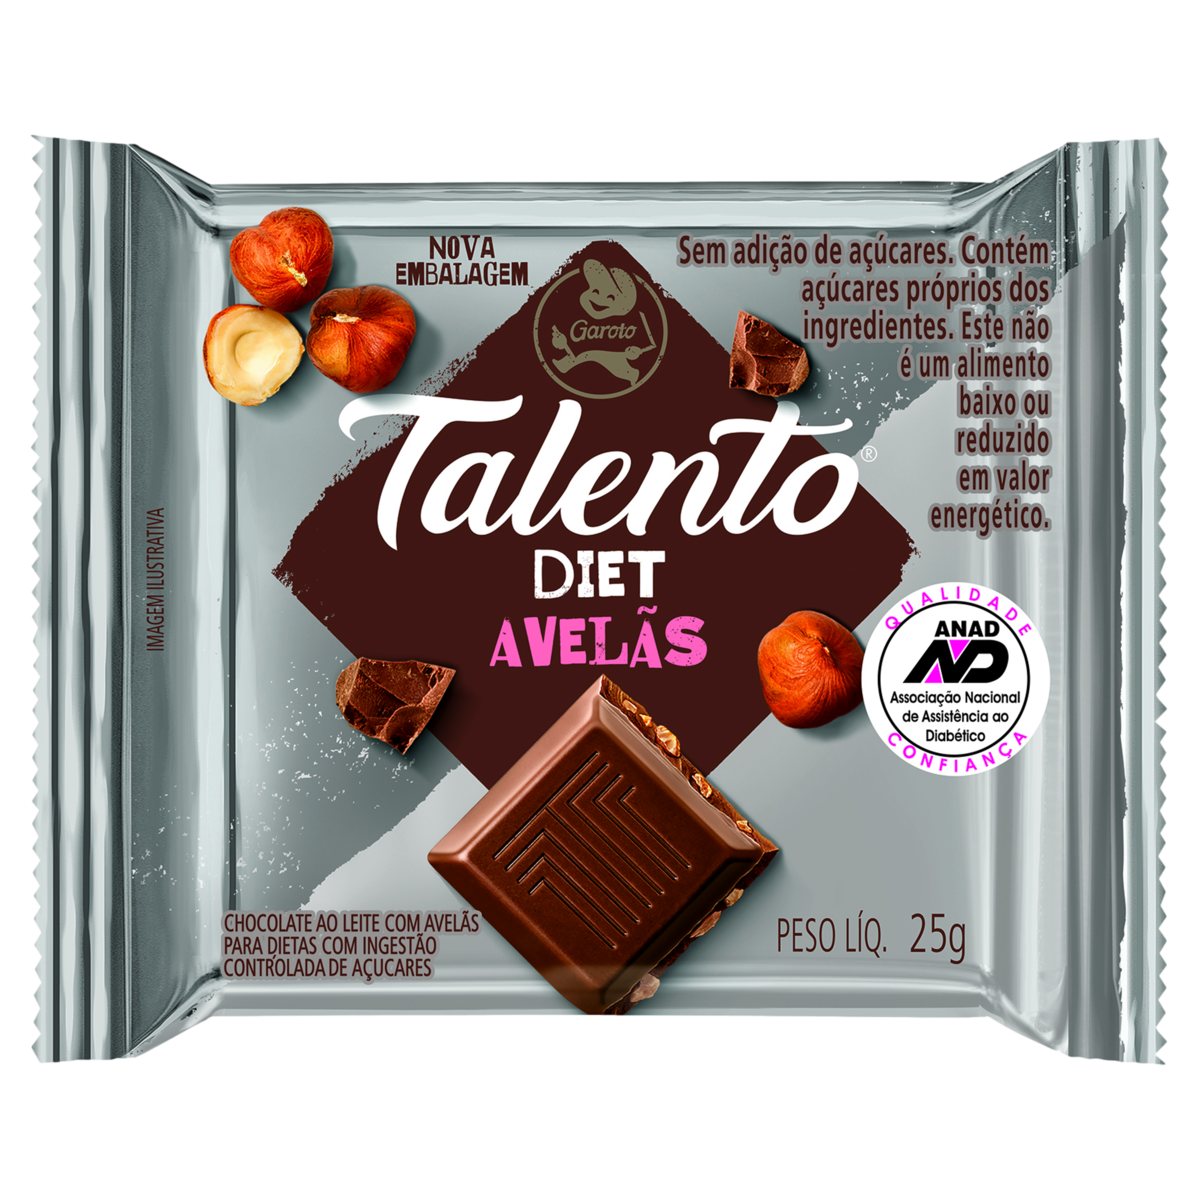 7891008074024 - BB TALENTO MINI DIET C/AVELA 15X | BB TALENTO MINI DIET C/AVELA 15X